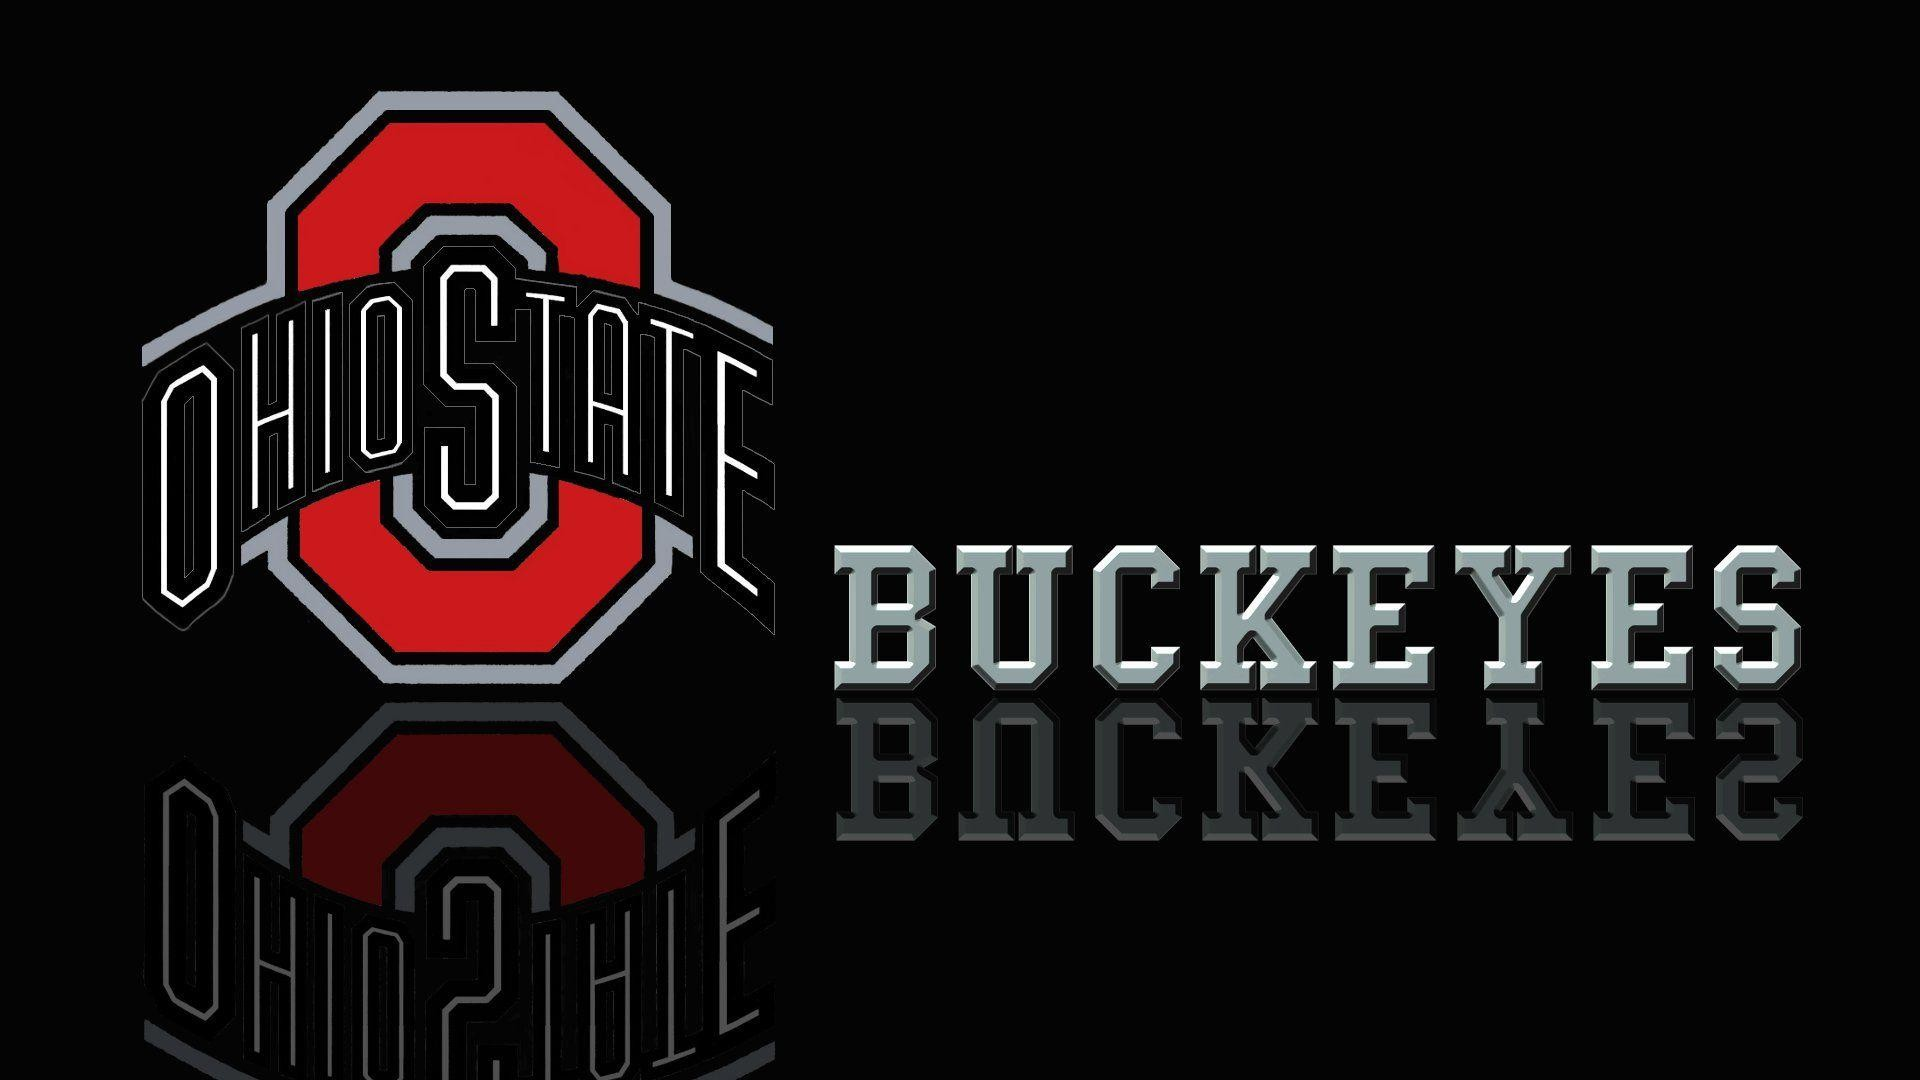 1920x1080 OSU Wallpaper - Ohio State Football Wallpaper (29007985) - Fanpop